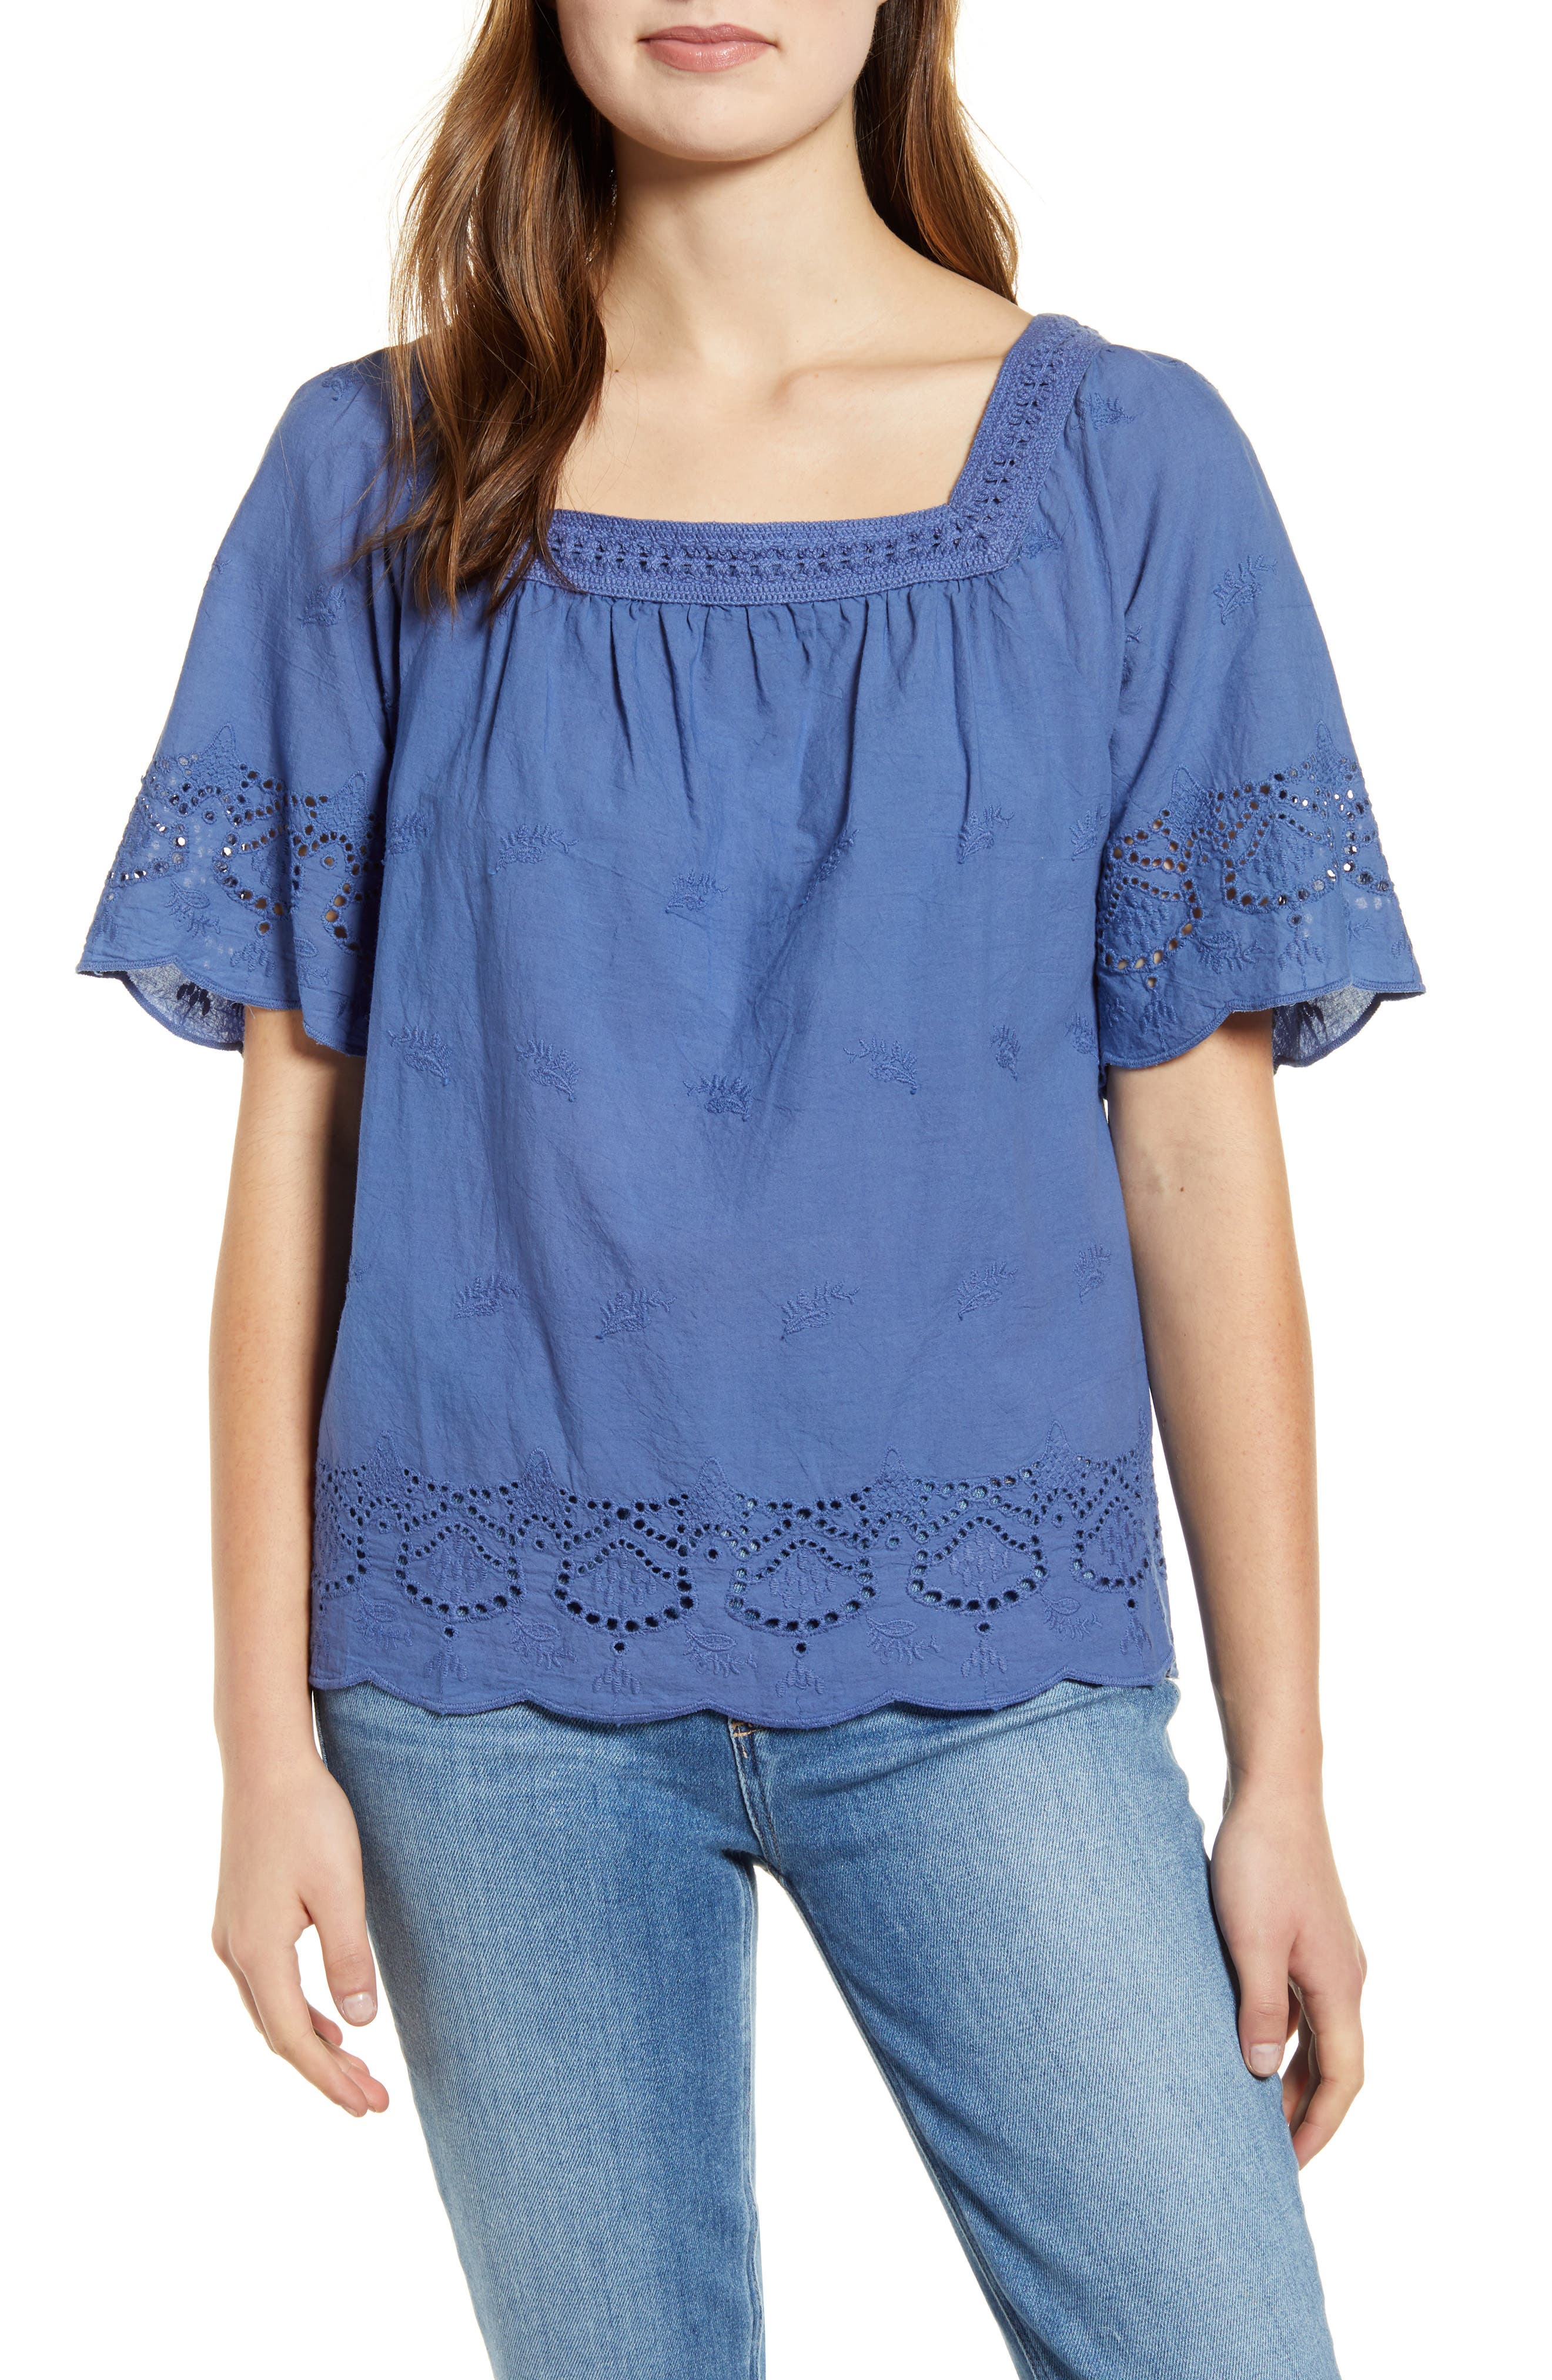 NEW Lucky Brand Romantic Peasant Blouse Women/'s Size Large White $70